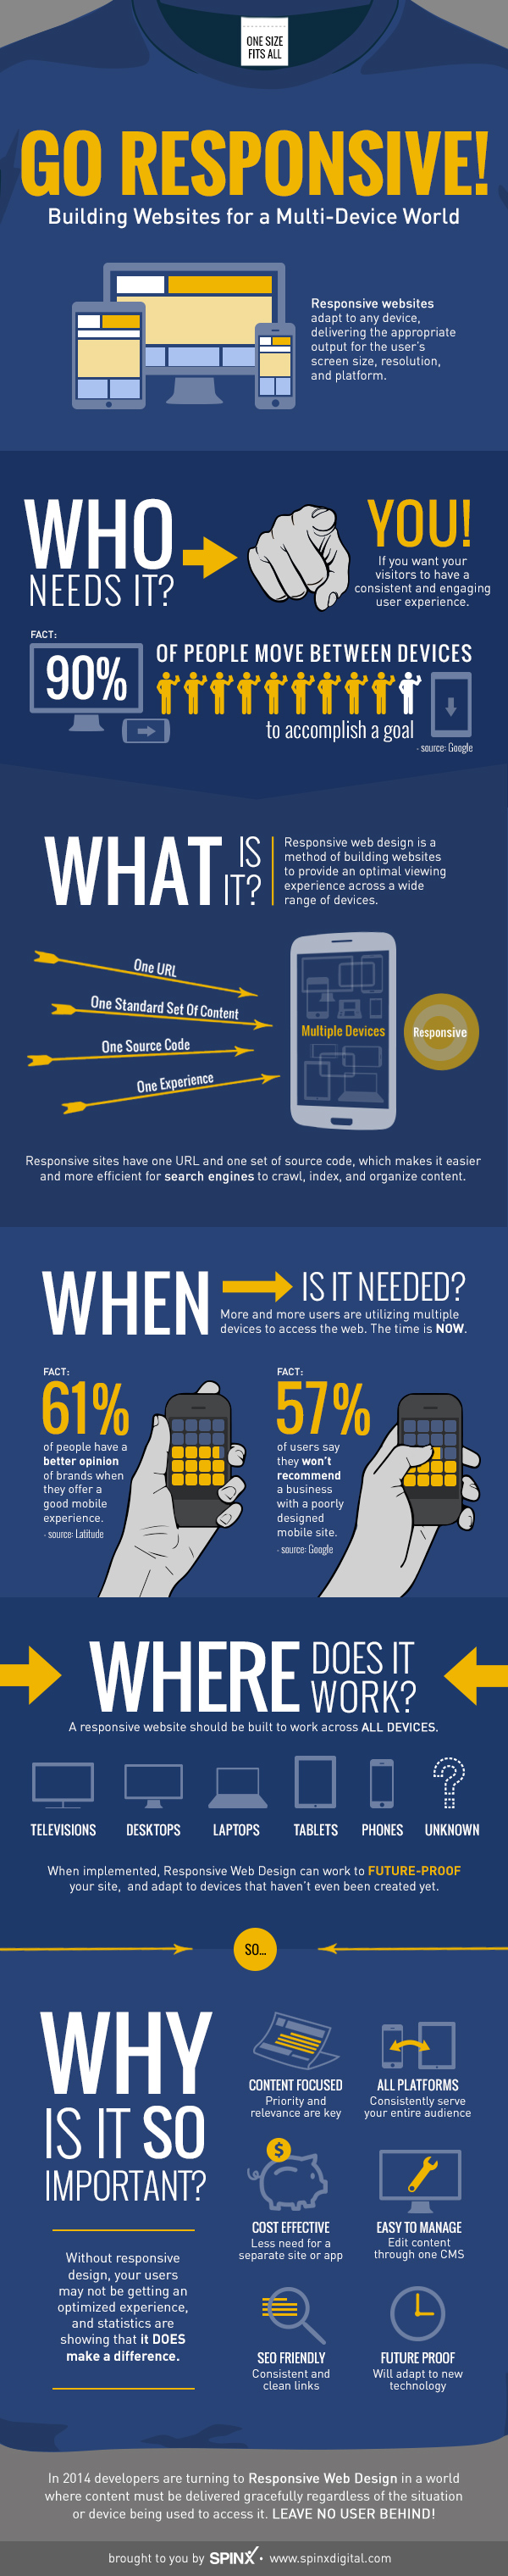 Why Responsive Websites Are Key In A Multi Device World Infographic Infographic Marketing Web Development Design Web Design